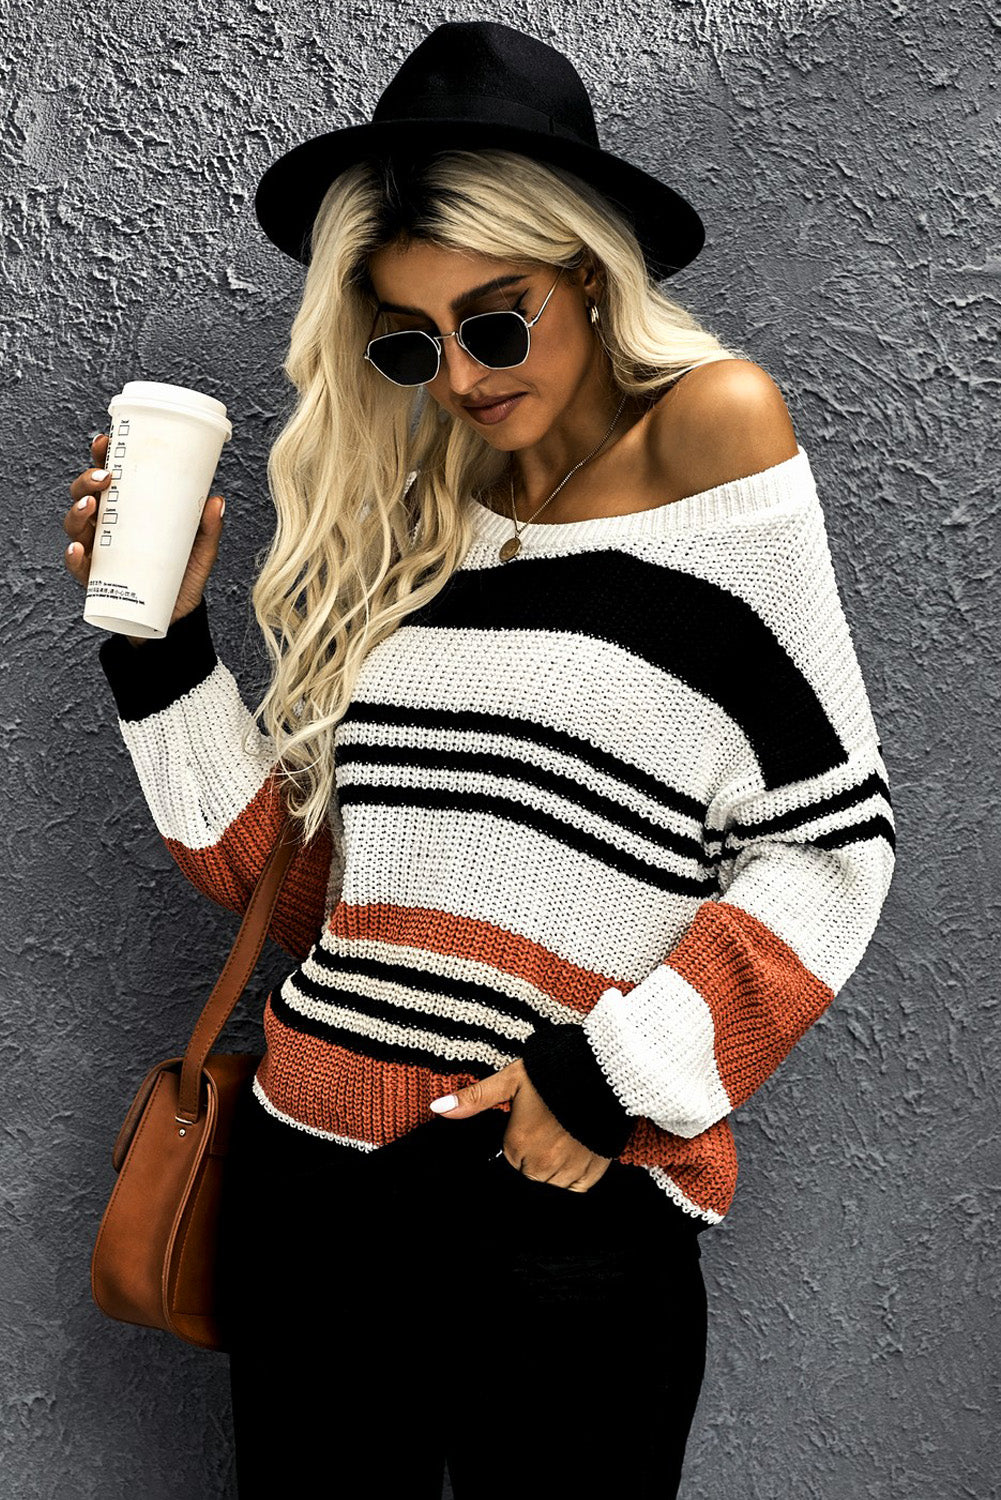 Black Striped Pattern Knit Sweater Sweaters & Cardigans Discount Designer Fashion Clothes Shoes Bags Women Men Kids Children Black Owned Business